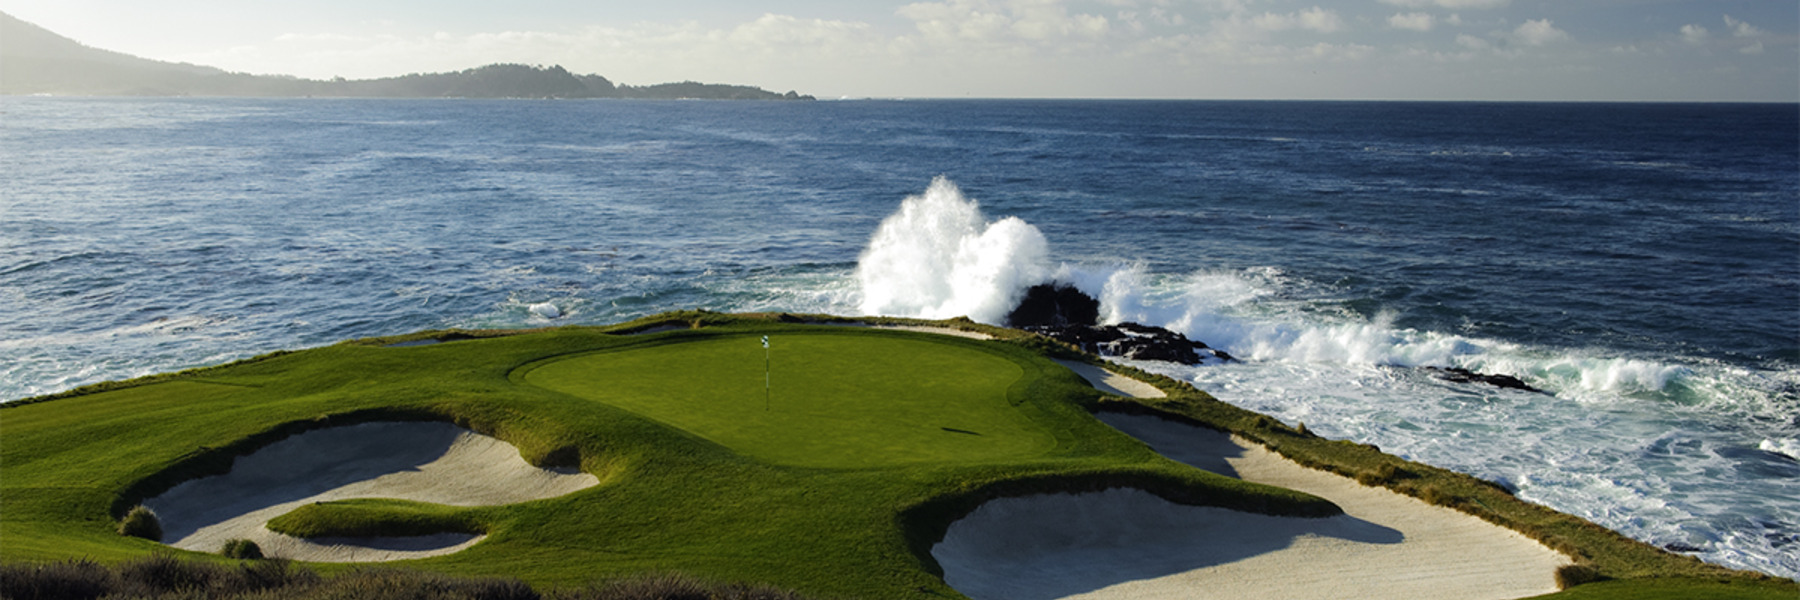 "Golf Vacation Package - Pebble Beach Stay and Play for $619 ""all in"" per person per day!"